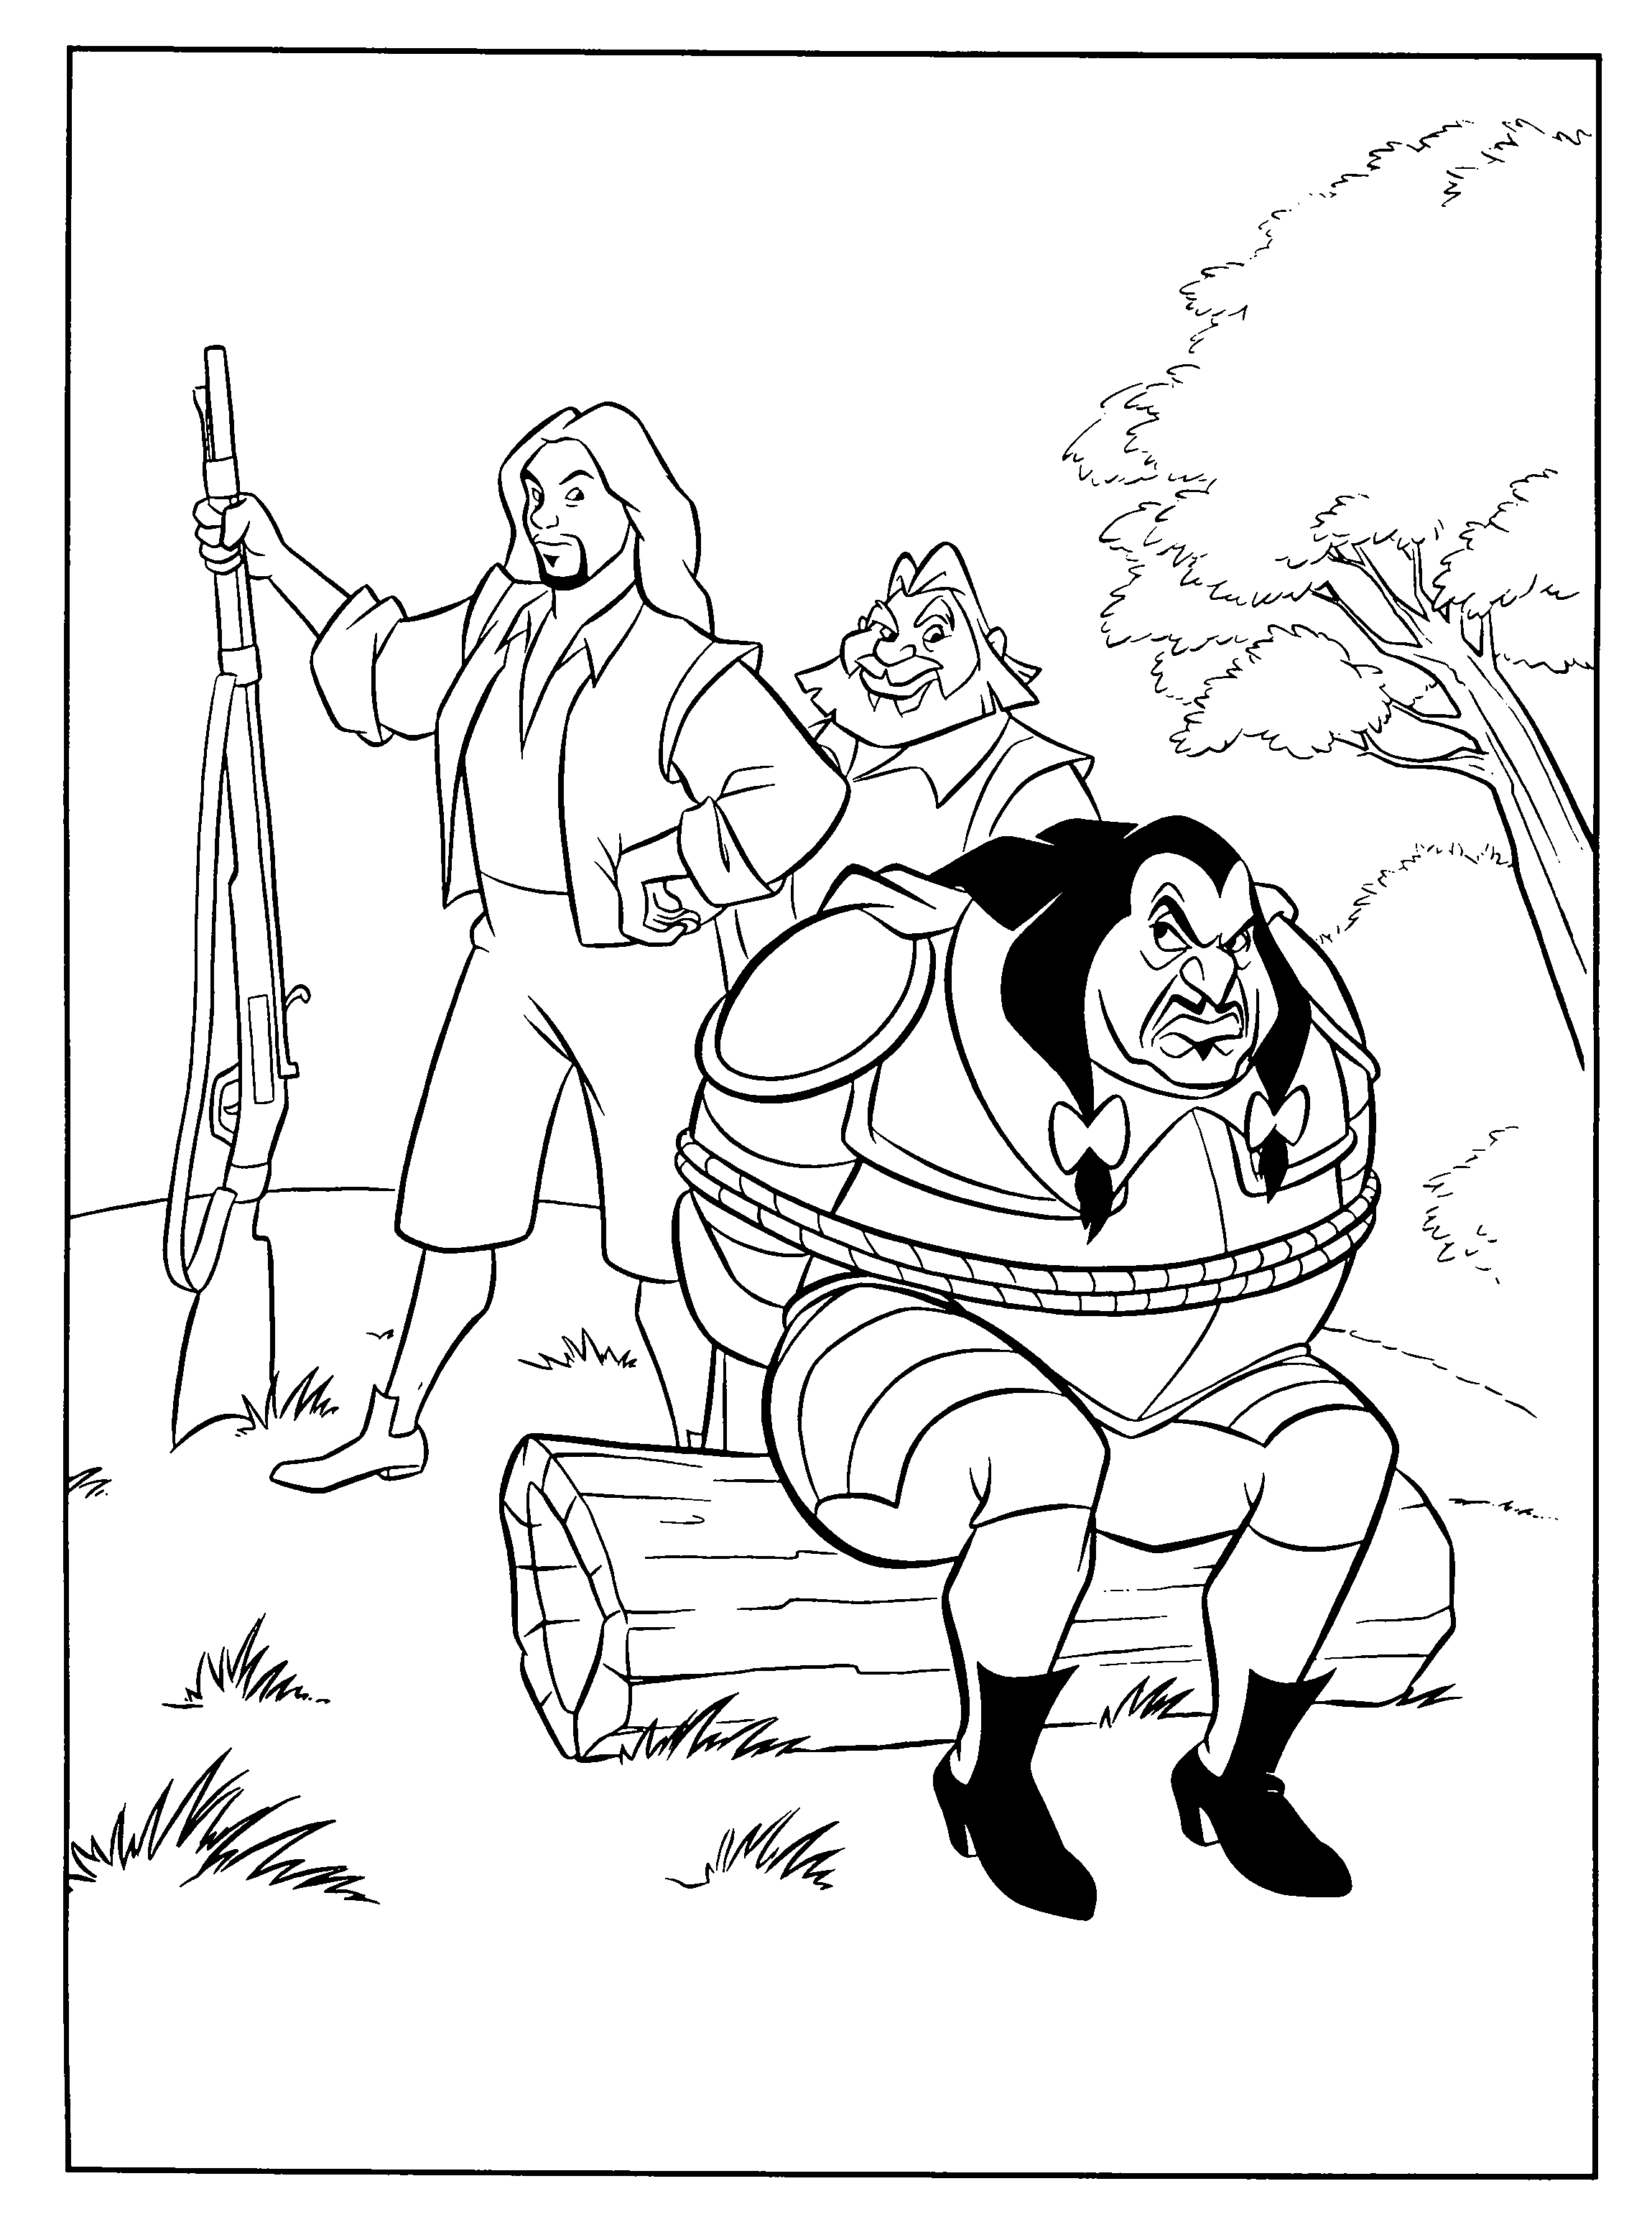 Pocahontas coloring pages googlesøgning coloring pages for kids